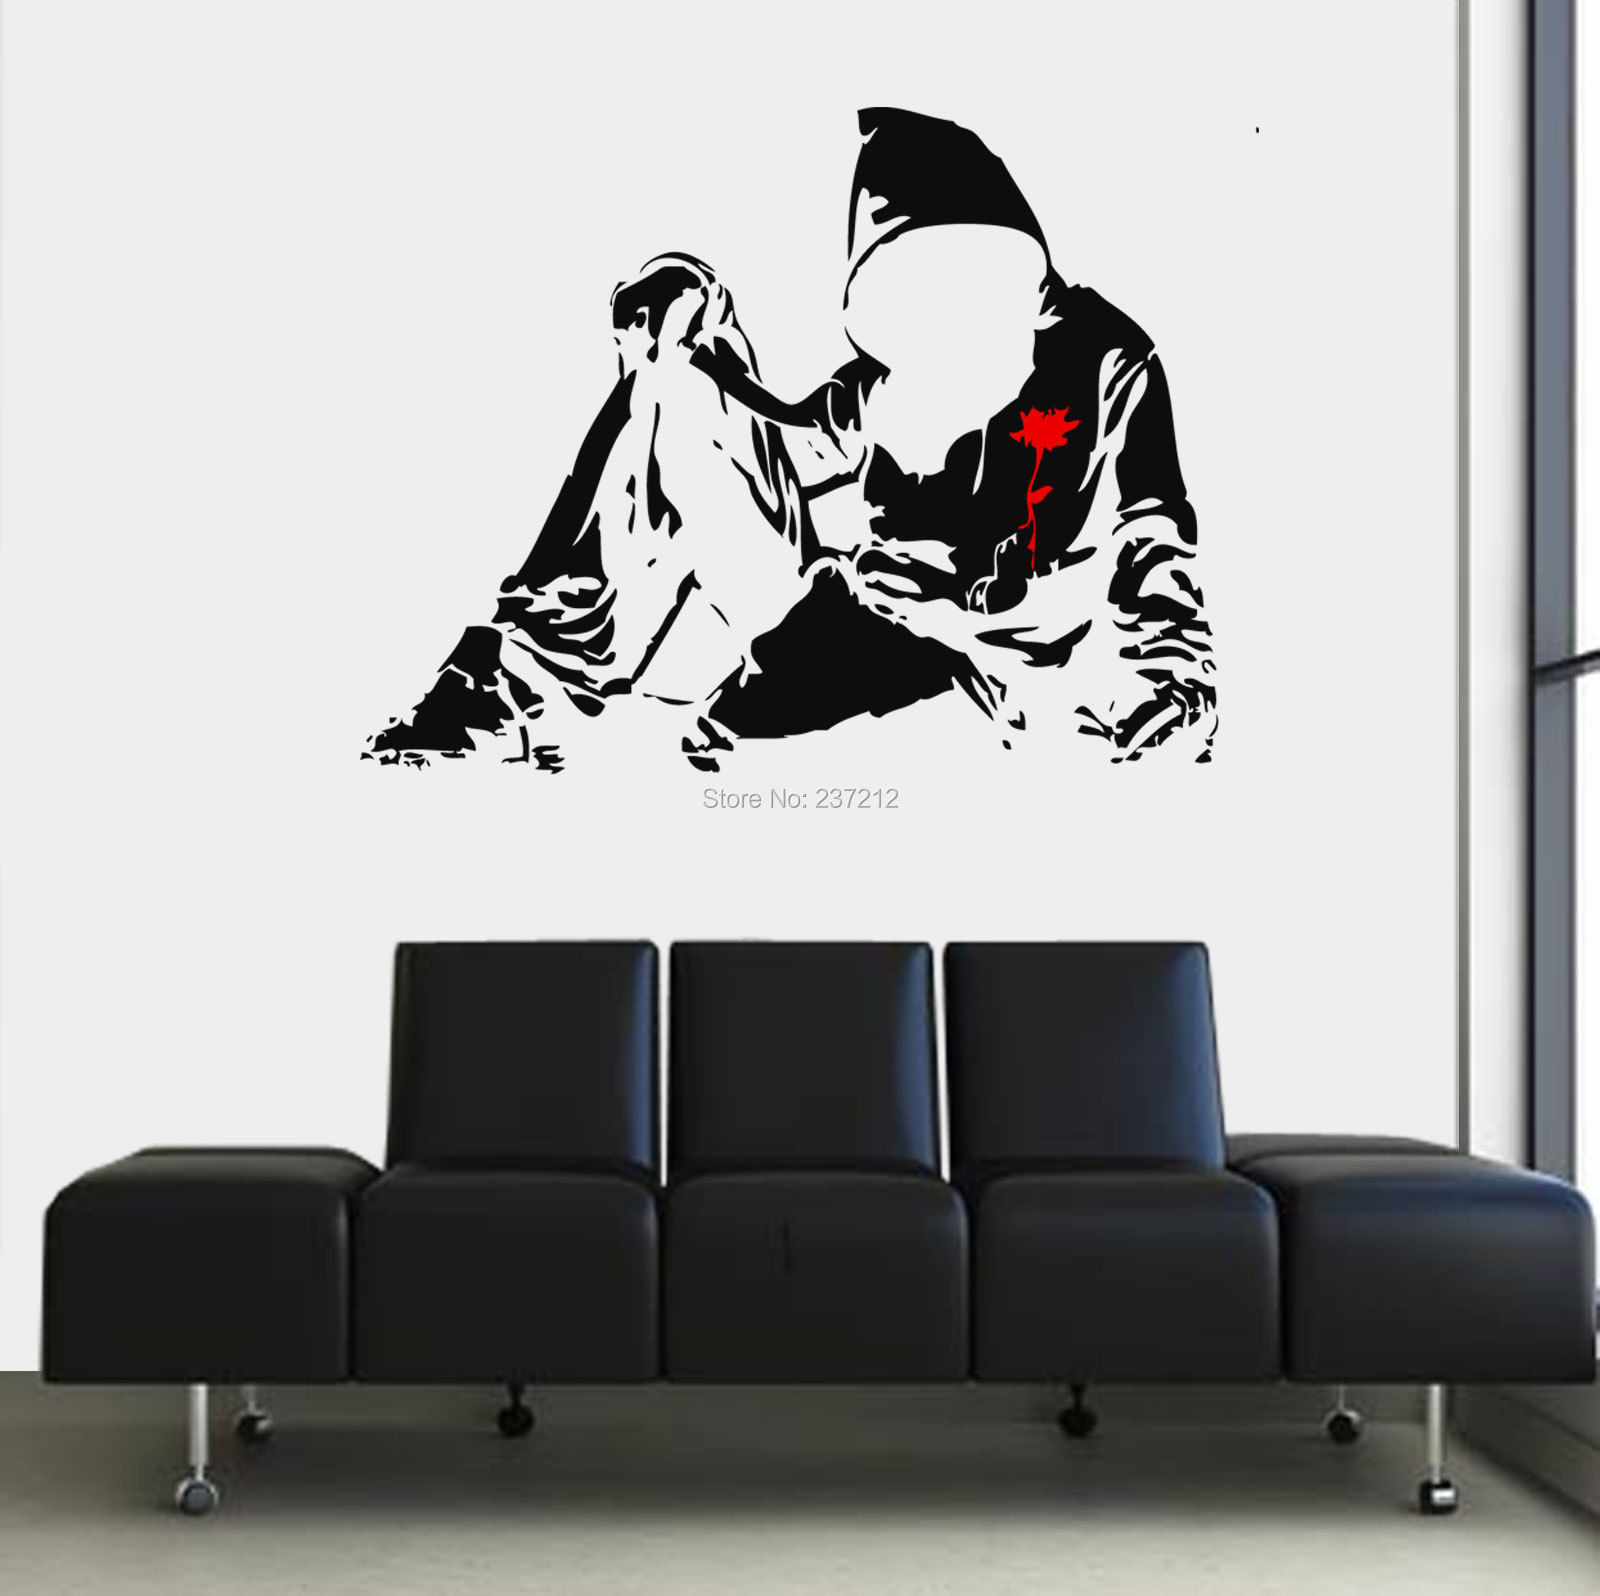 Graffiti wall vinyl - Aliexpress Com Buy Free Shipping Banksy Graffiti Hoodie Wall Transfer Vinyl Art Decal Graphical Room Sticker From Reliable Room Stickers Suppliers On